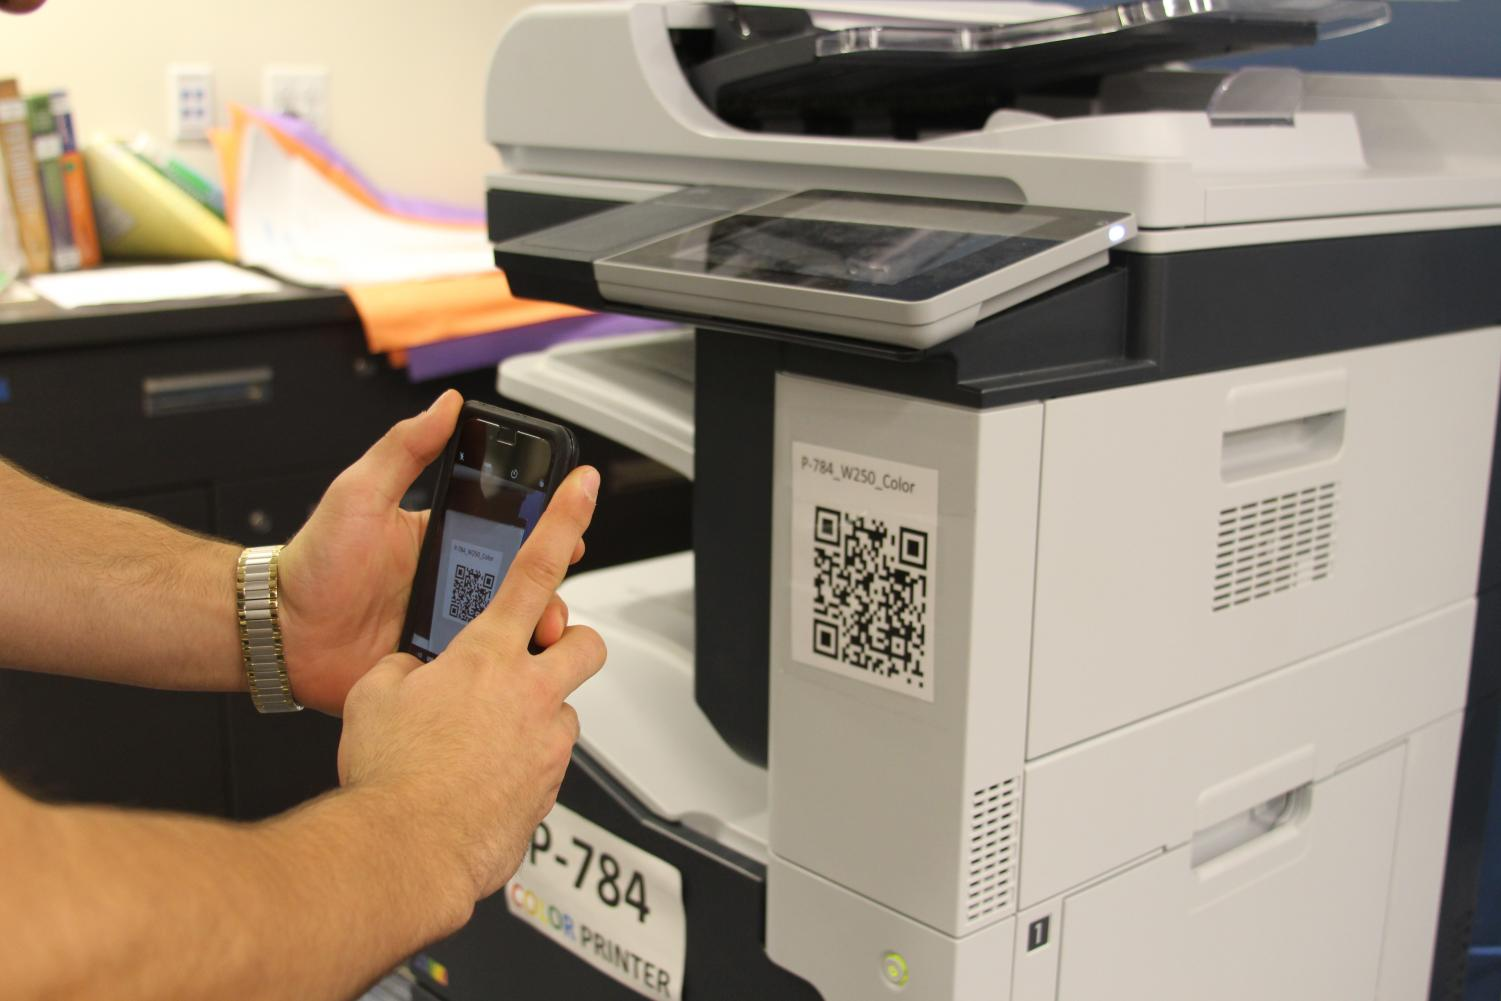 The new printers in the library feature QR codes that can be scanned to print faster and easier | Pearlman